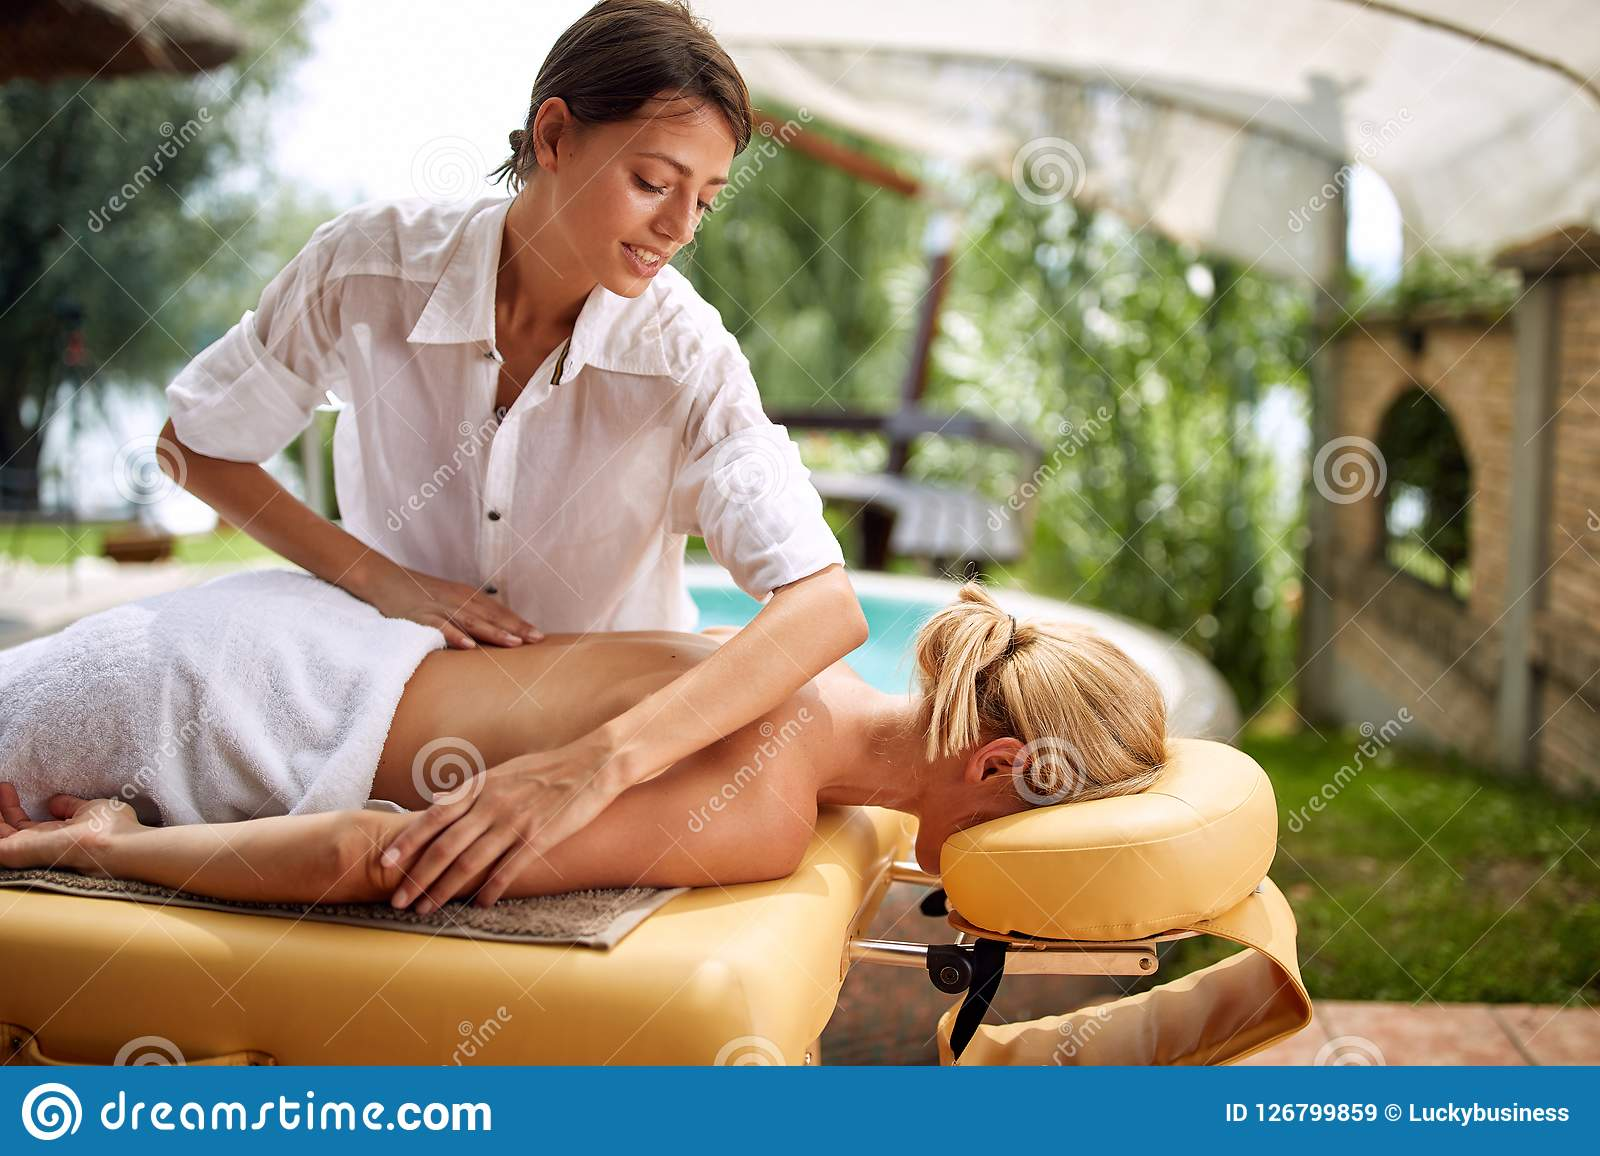 Where Can I Get Full Body Massage Woman Receiving Full Body Massage At The Spa Salon Profession Oc